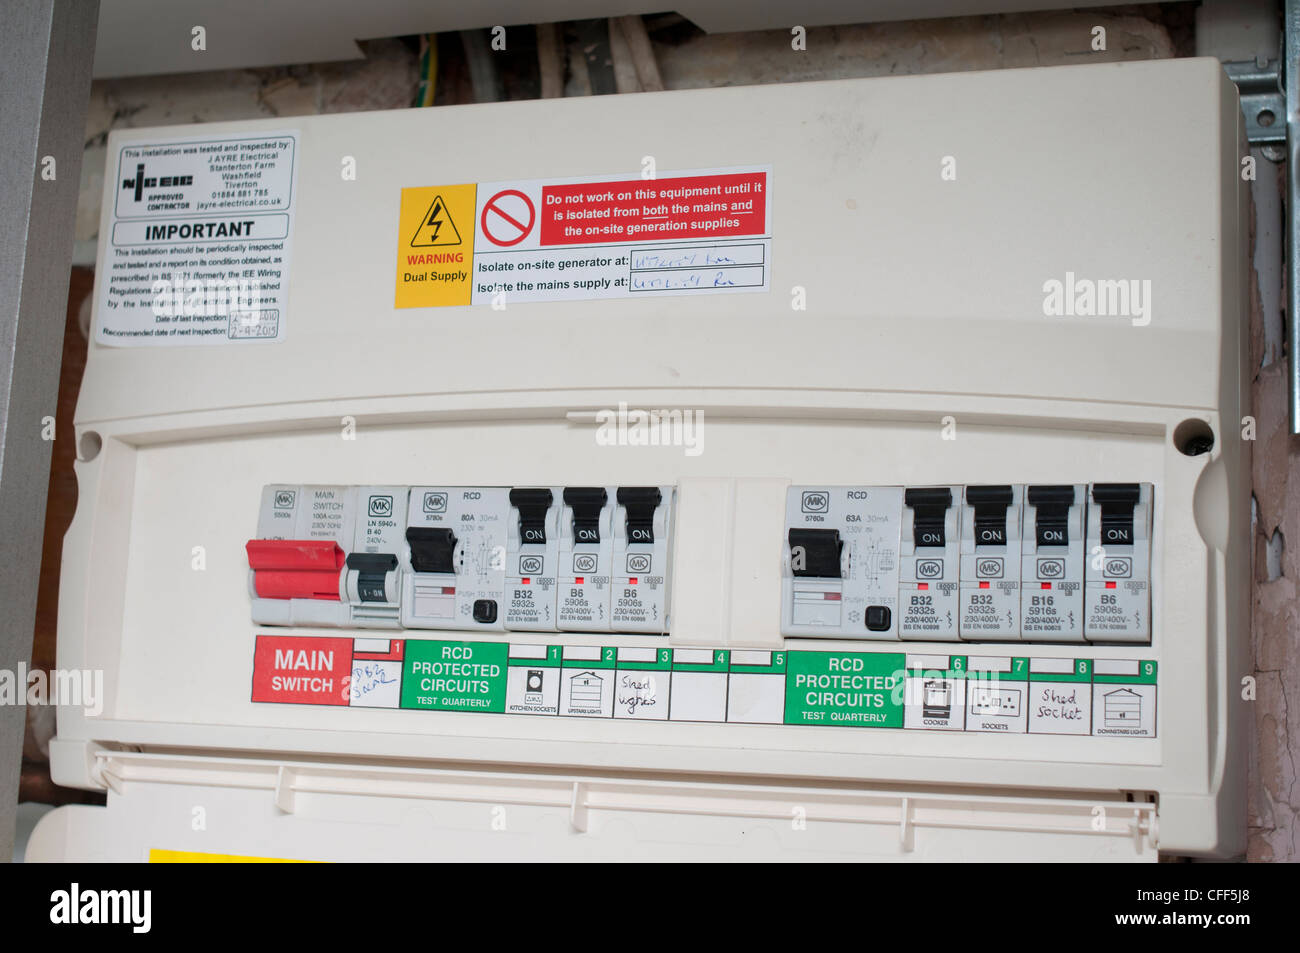 domestic fuse box CFF5J8 fuse box in house how to change a fuse in a breaker box \u2022 wiring Fuses and Circuit Breakers at bayanpartner.co